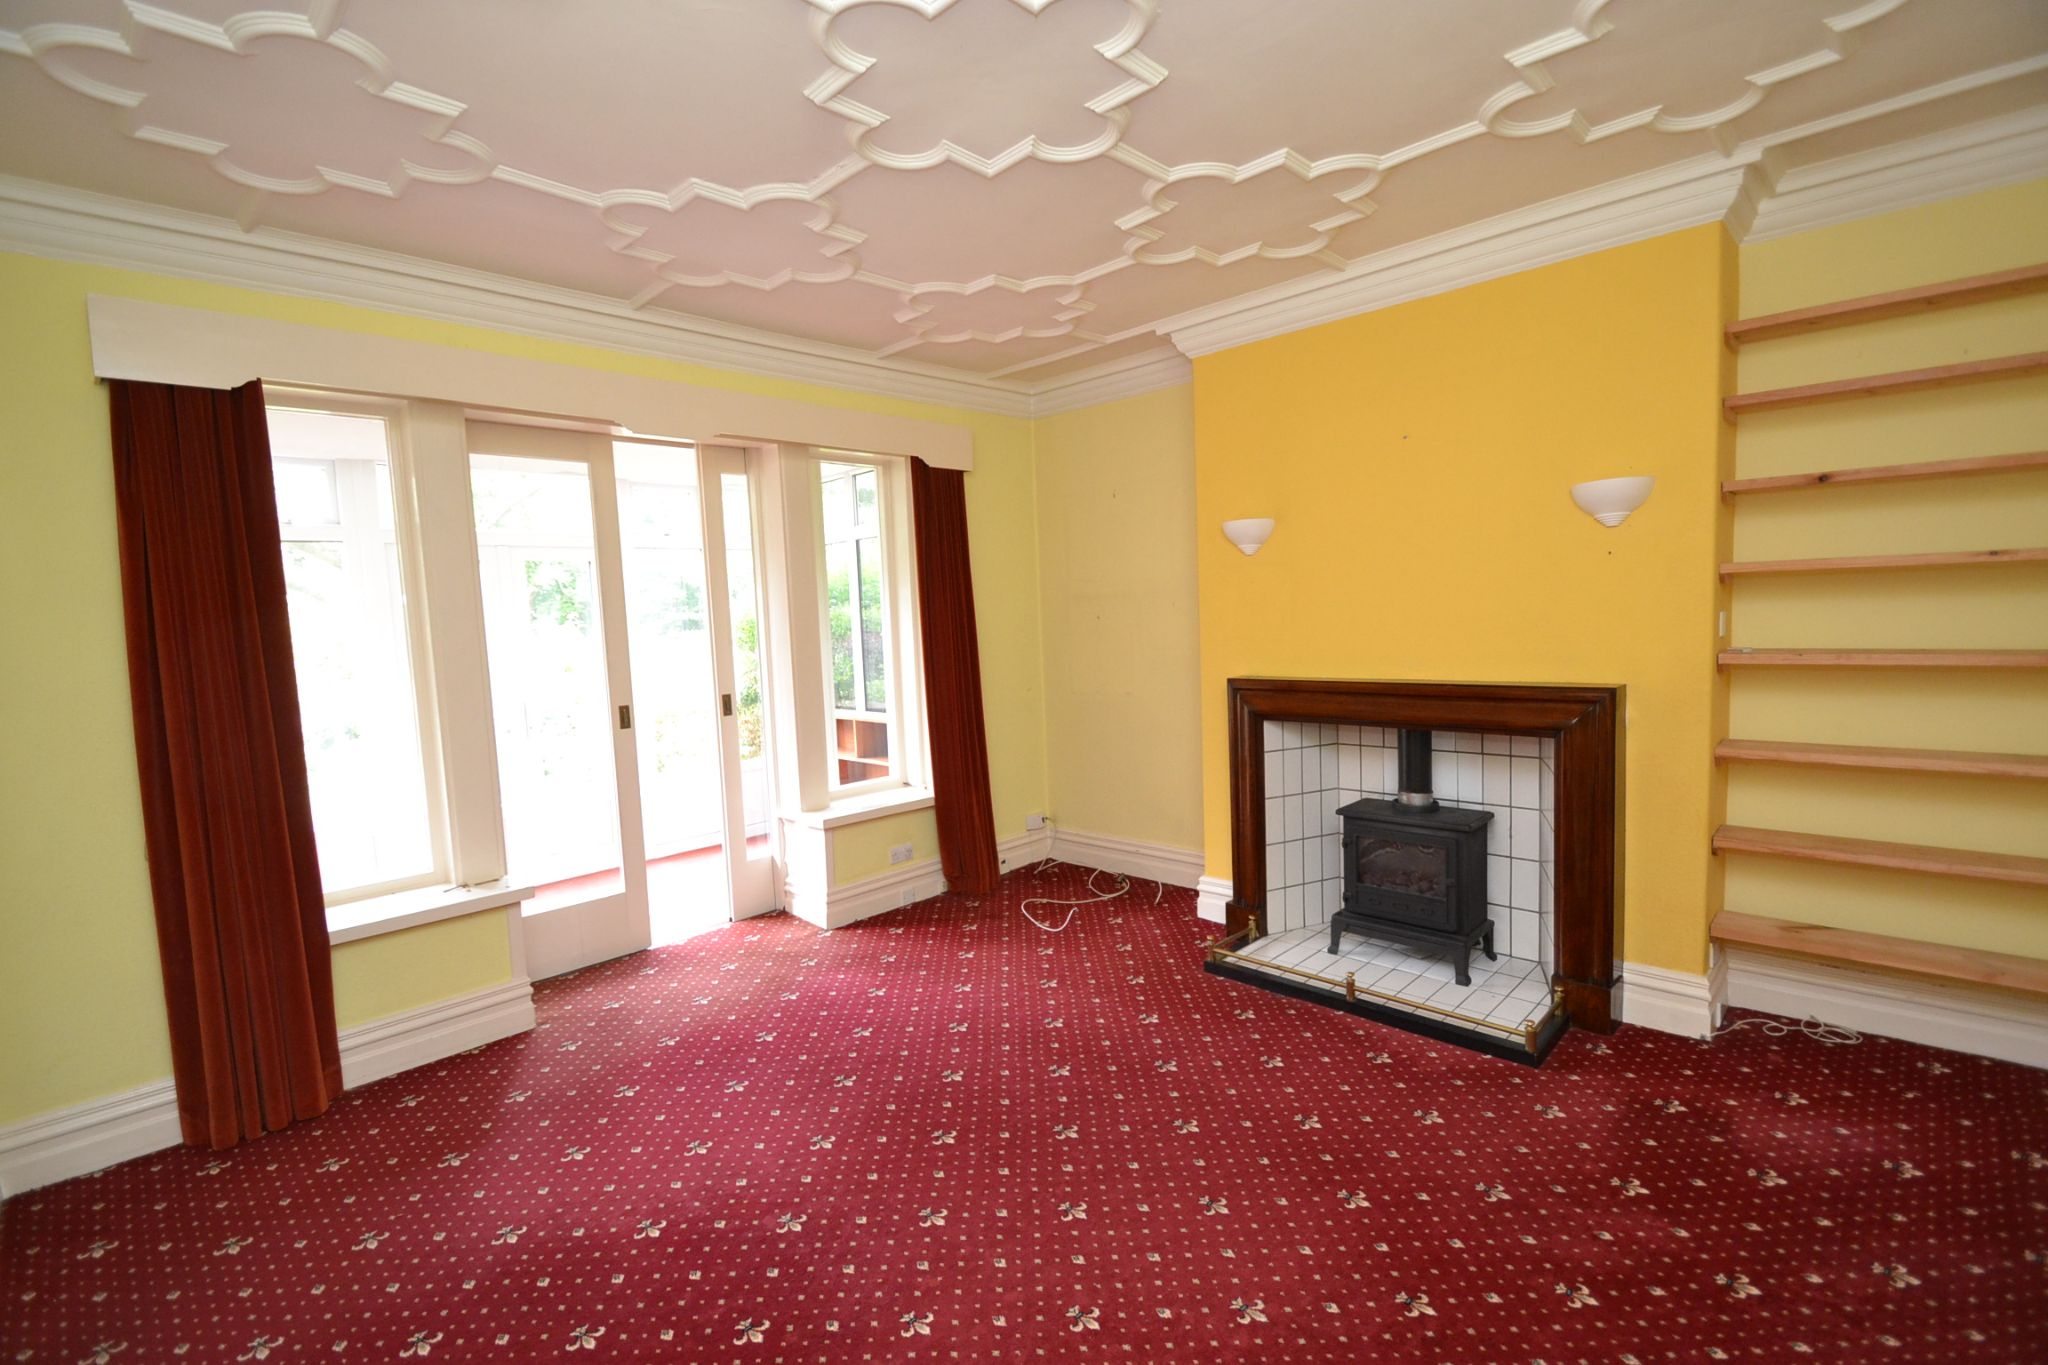 6 Bedroom Semi-detached House For Sale - Photograph 7